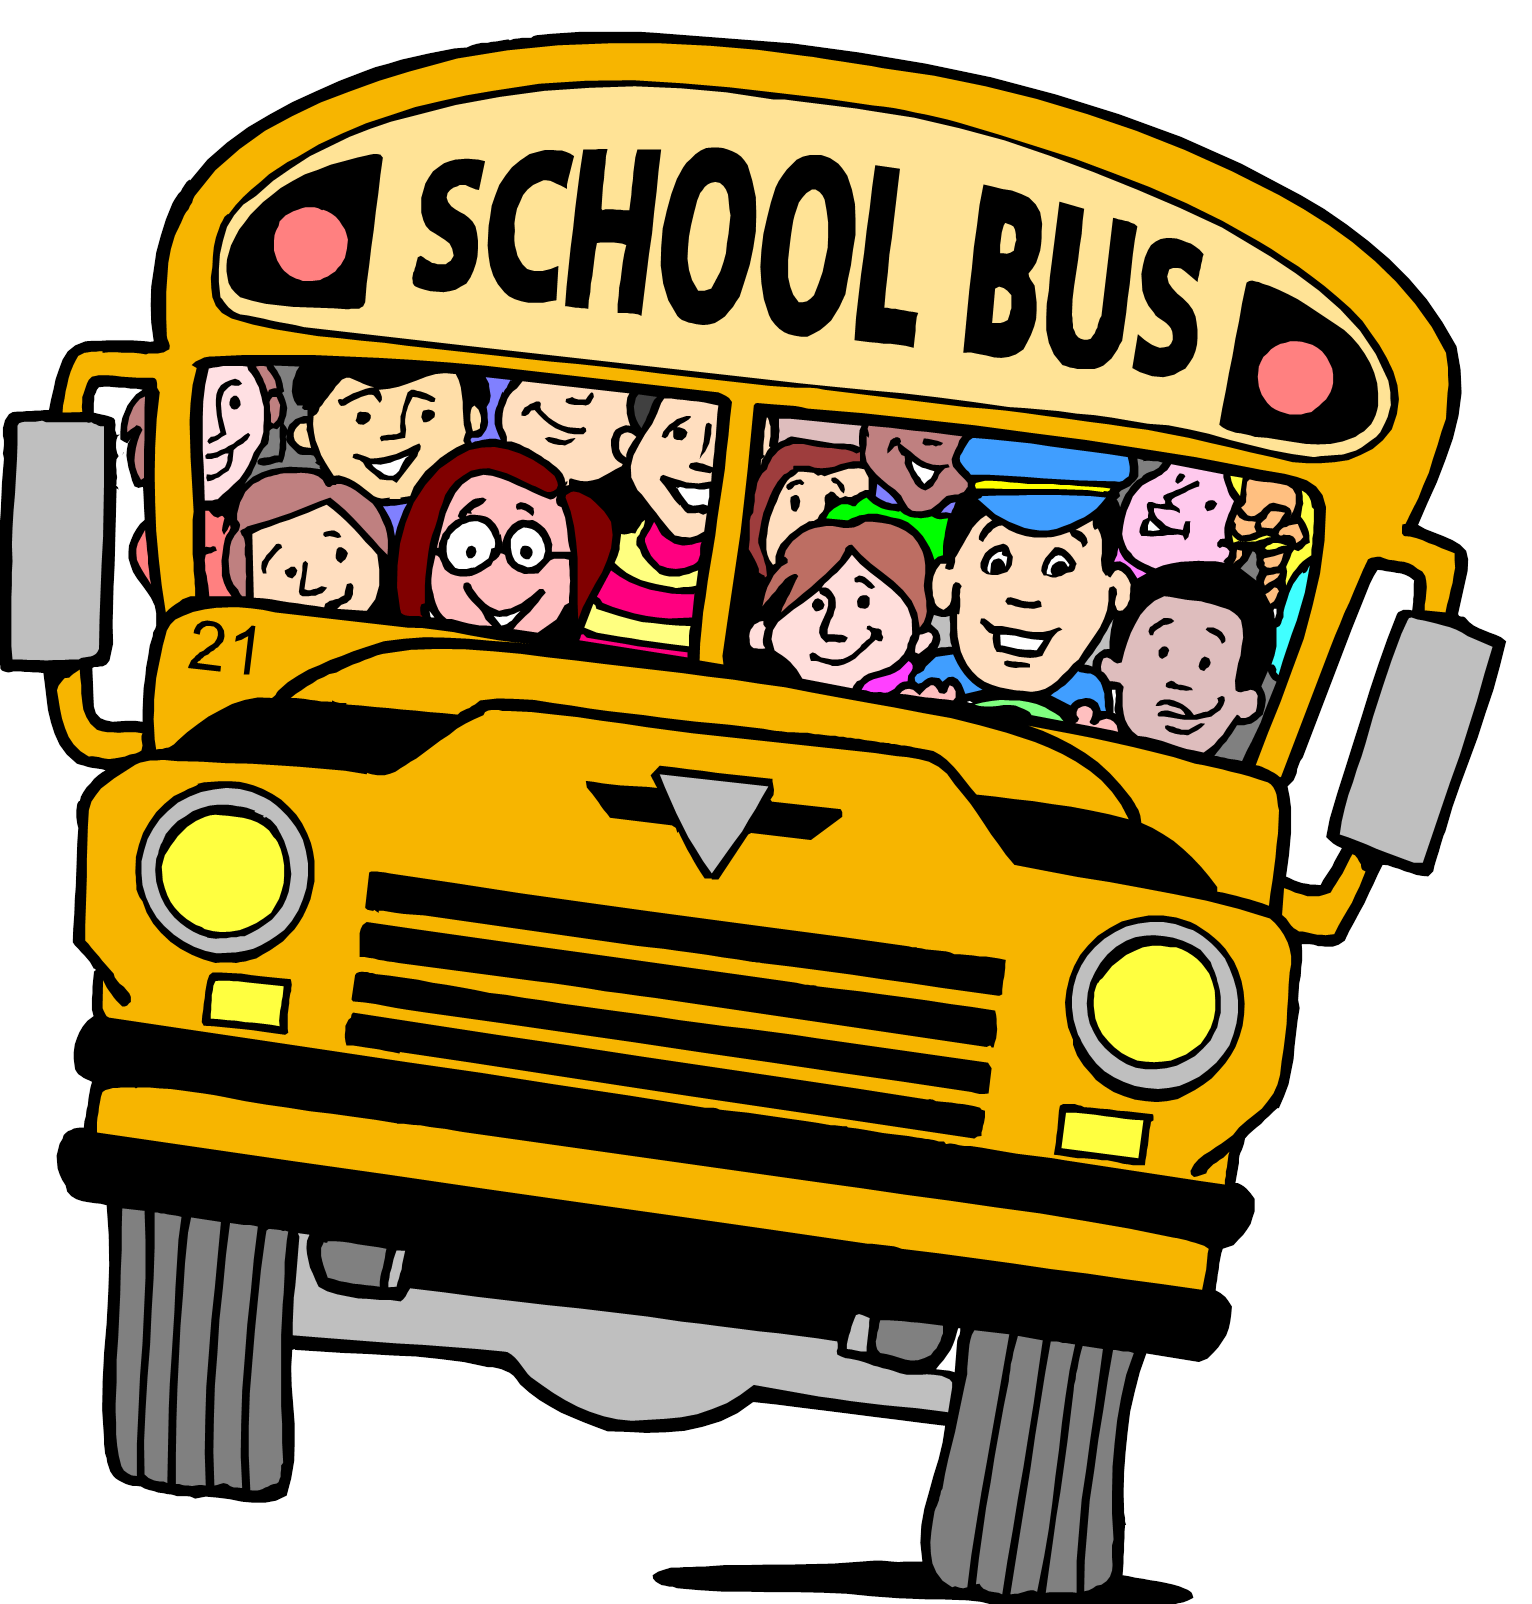 School transportation clipart clip freeuse schoolbus clipart | Clip Art - school bus | terrace | Pinterest ... clip freeuse